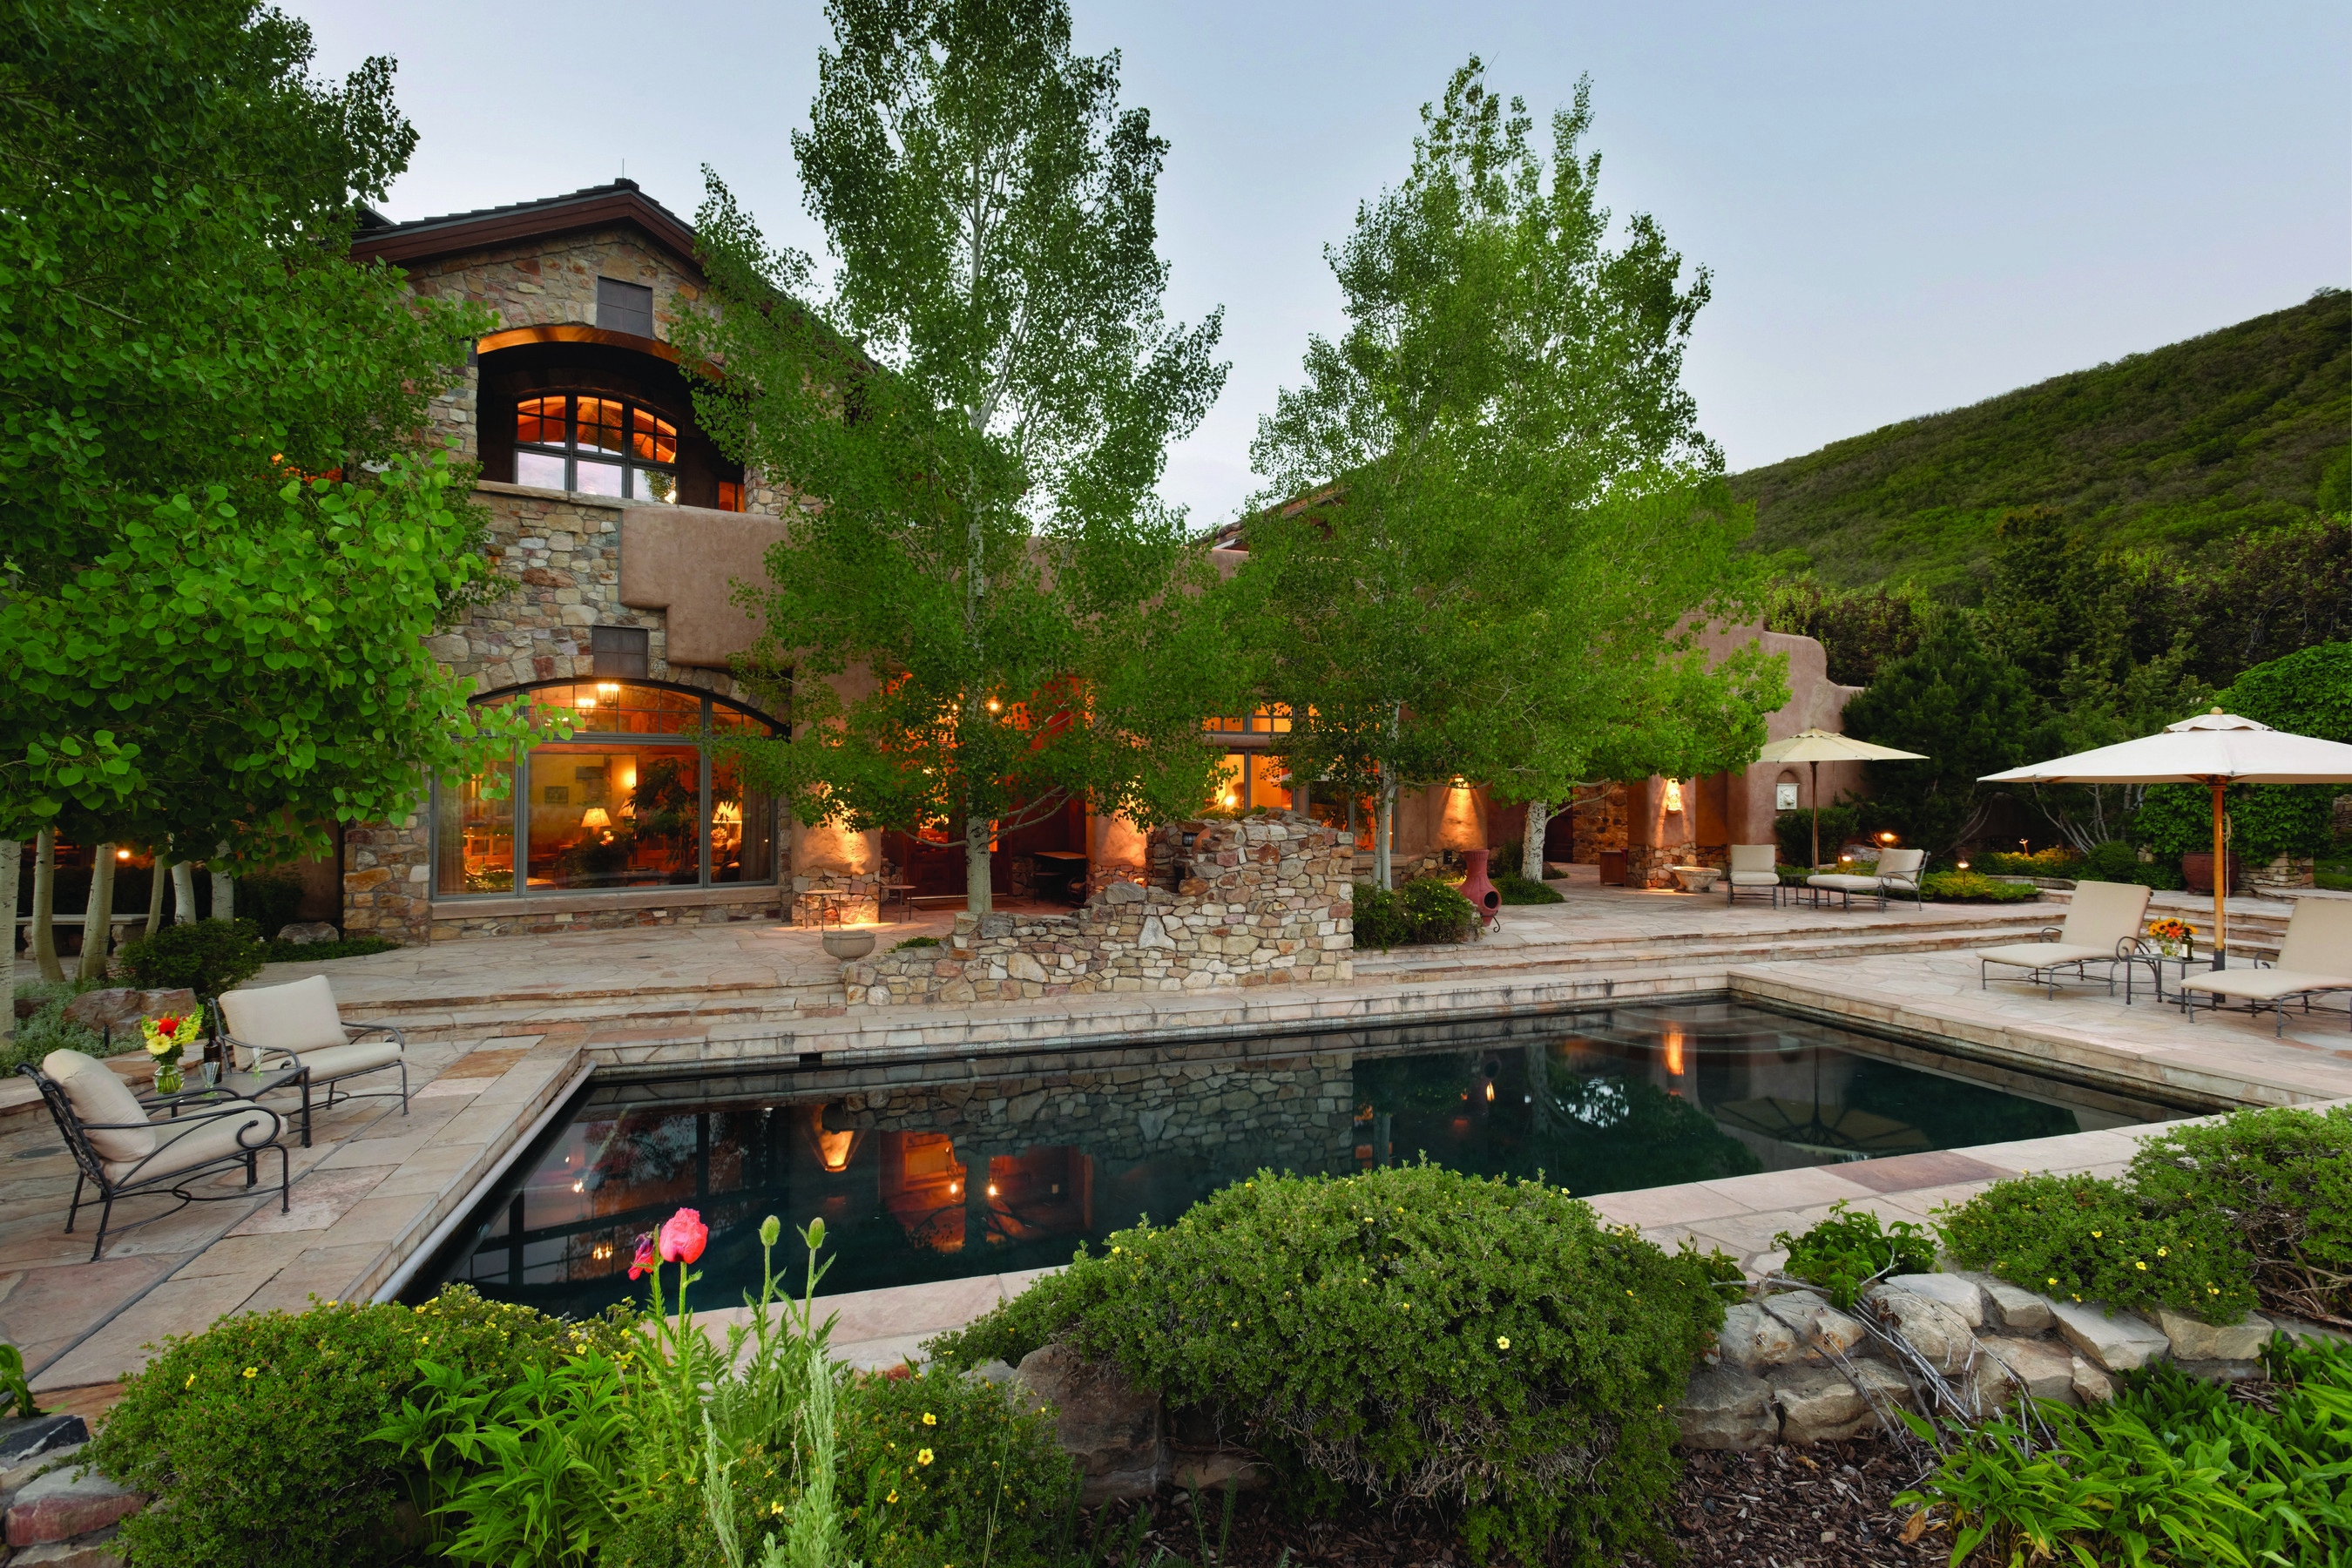 단독 가정 주택 용 매매 에 Tuscan Estate in Old Snowmass 7852 Snowmass Creek Road Snowmass, 콜로라도, 81654 미국